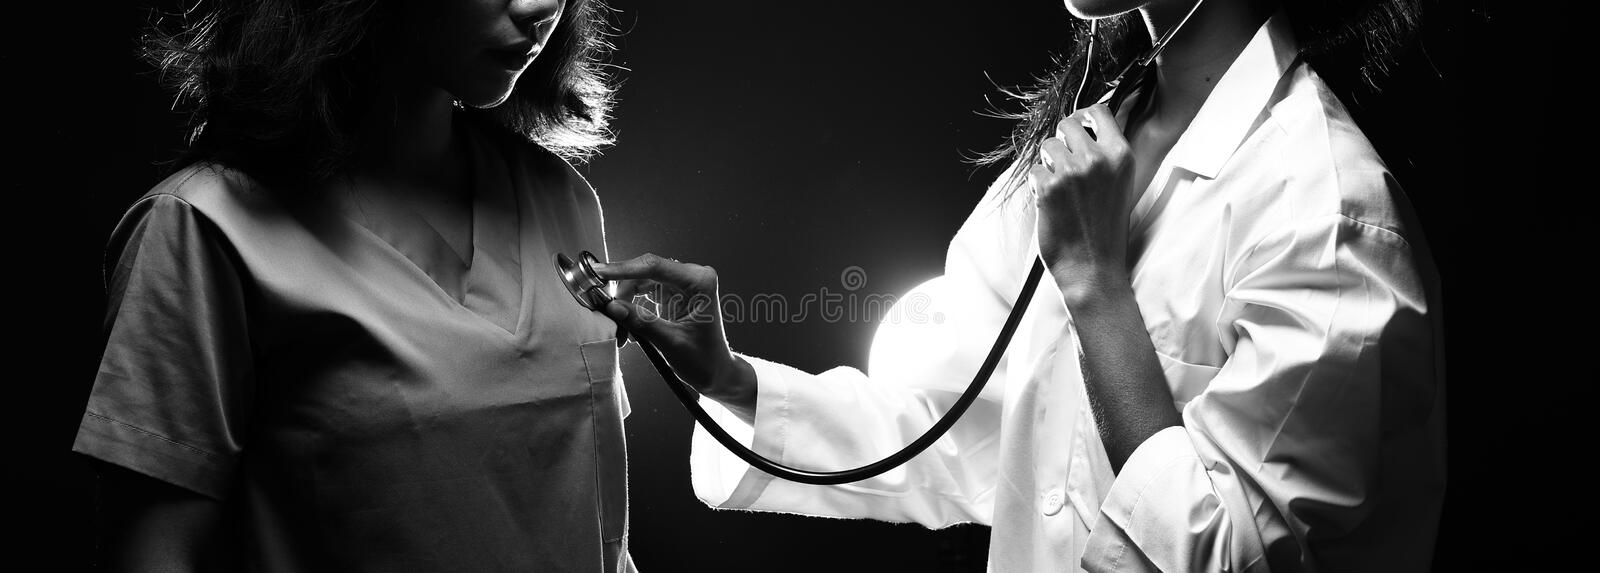 Doctor Nurse woman in uniform with stethoscope check heart rate. Asian Beautiful Doctor Nurse women in uniform with stethoscope check heart rate of patient royalty free stock photo